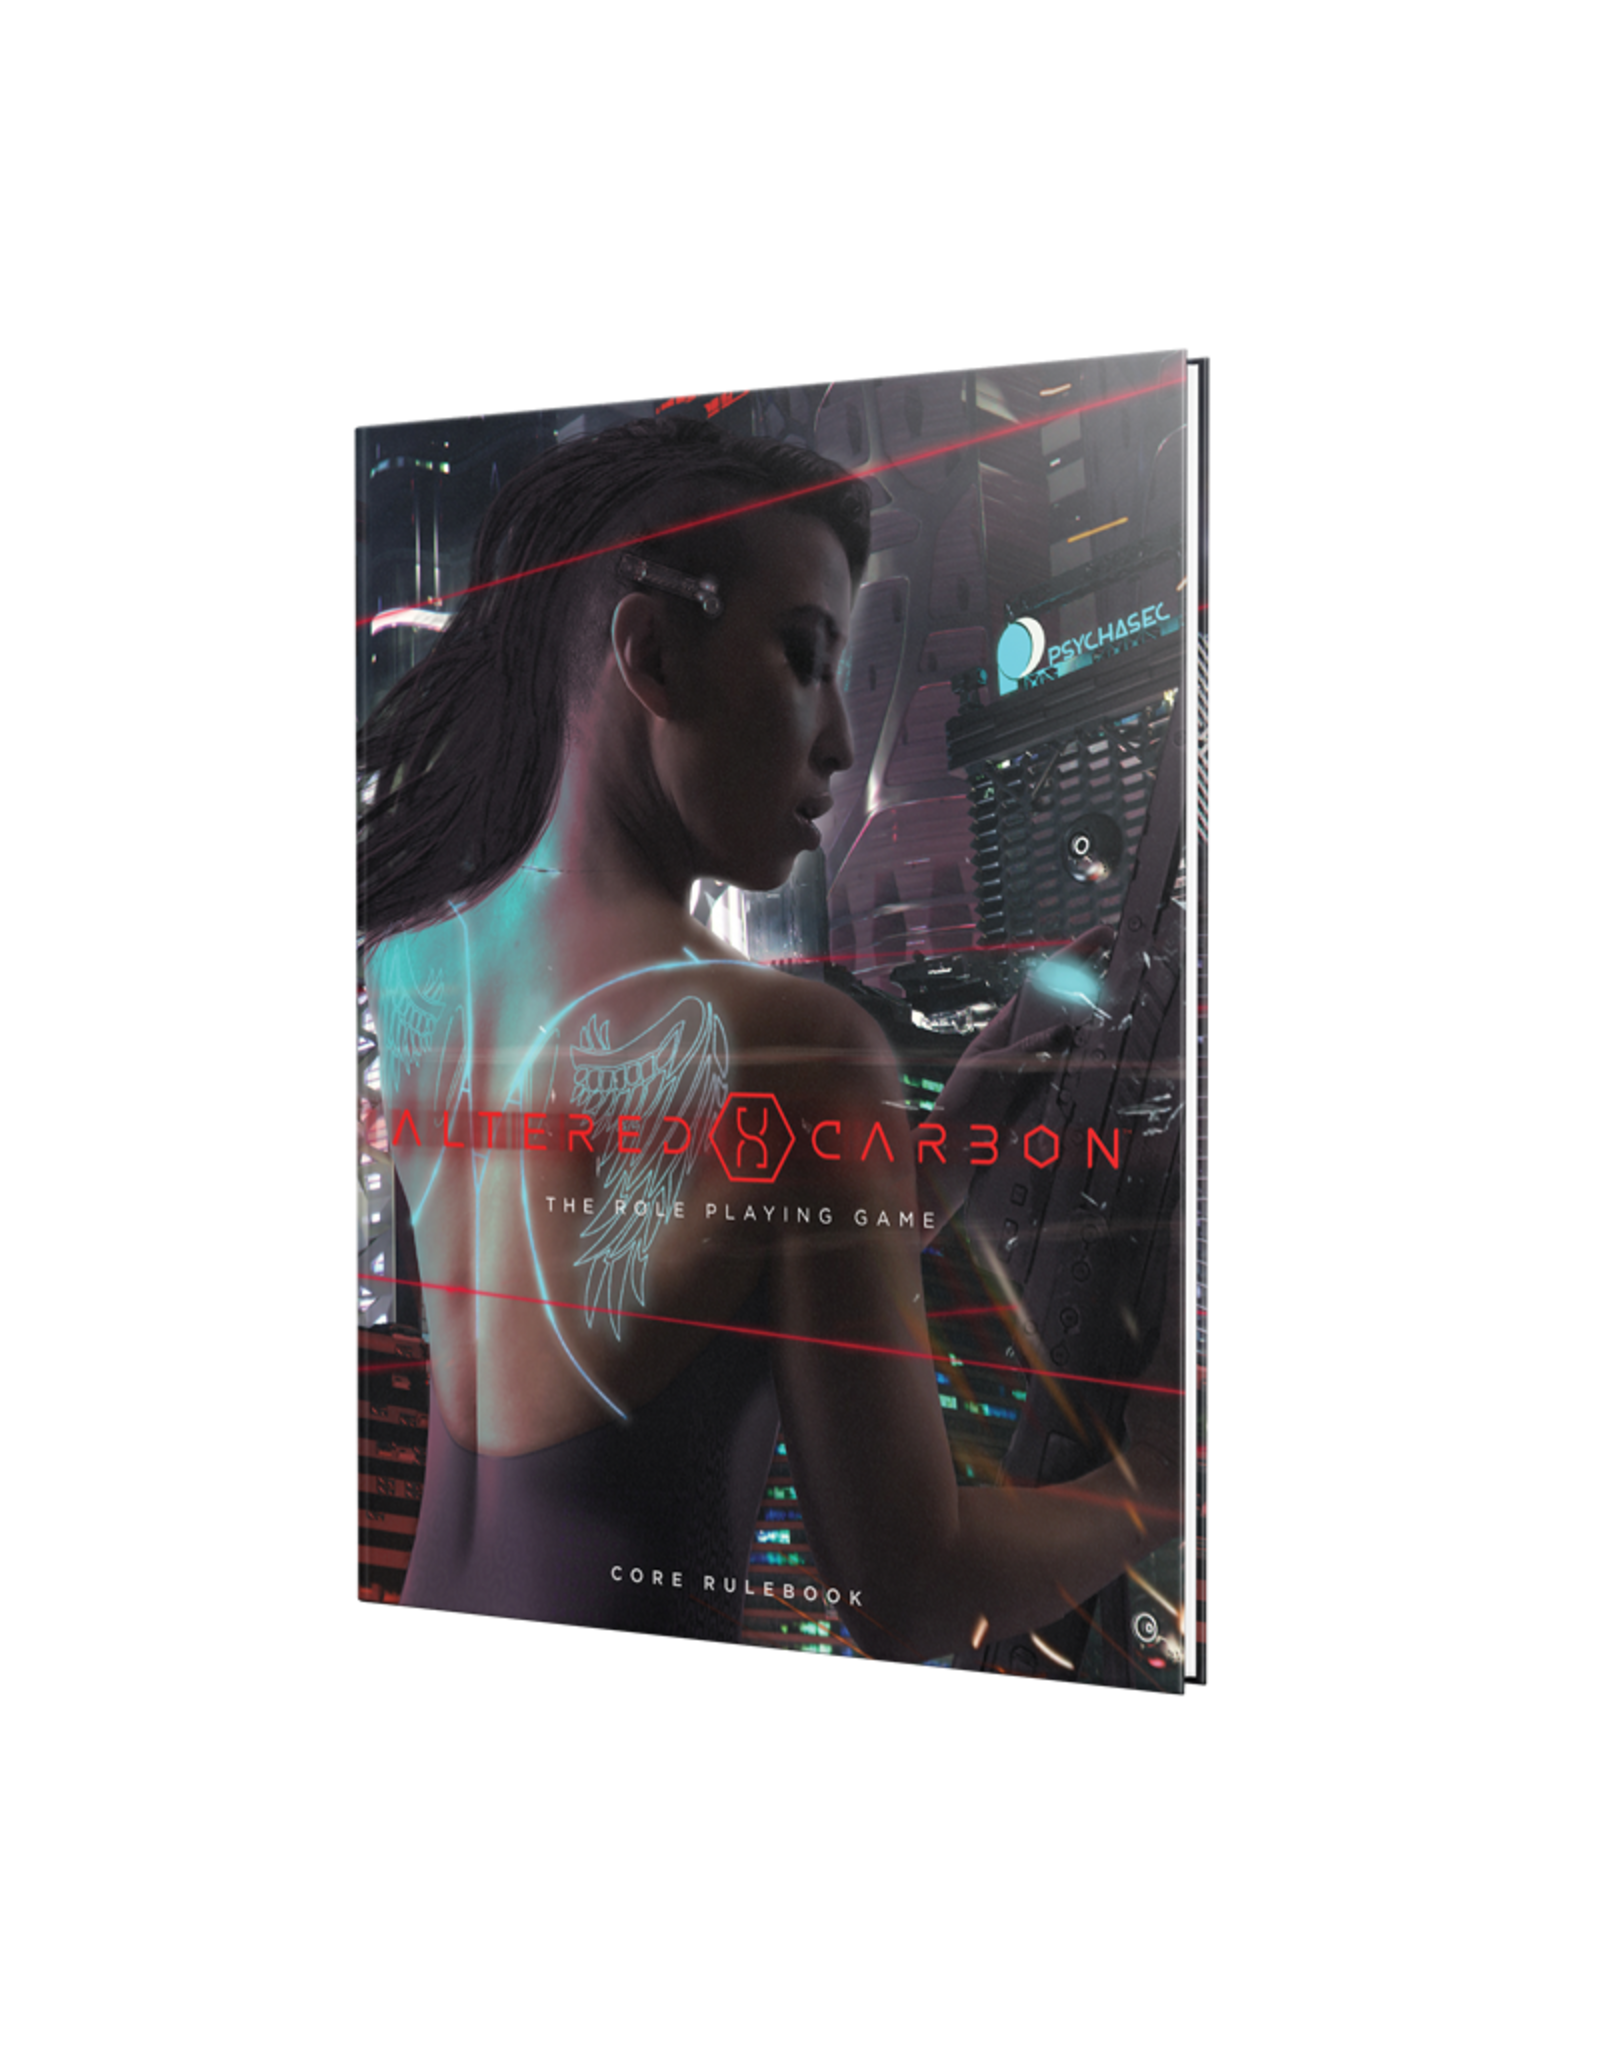 RENEGADE Altered Carbon Core Rulebook Hardcover